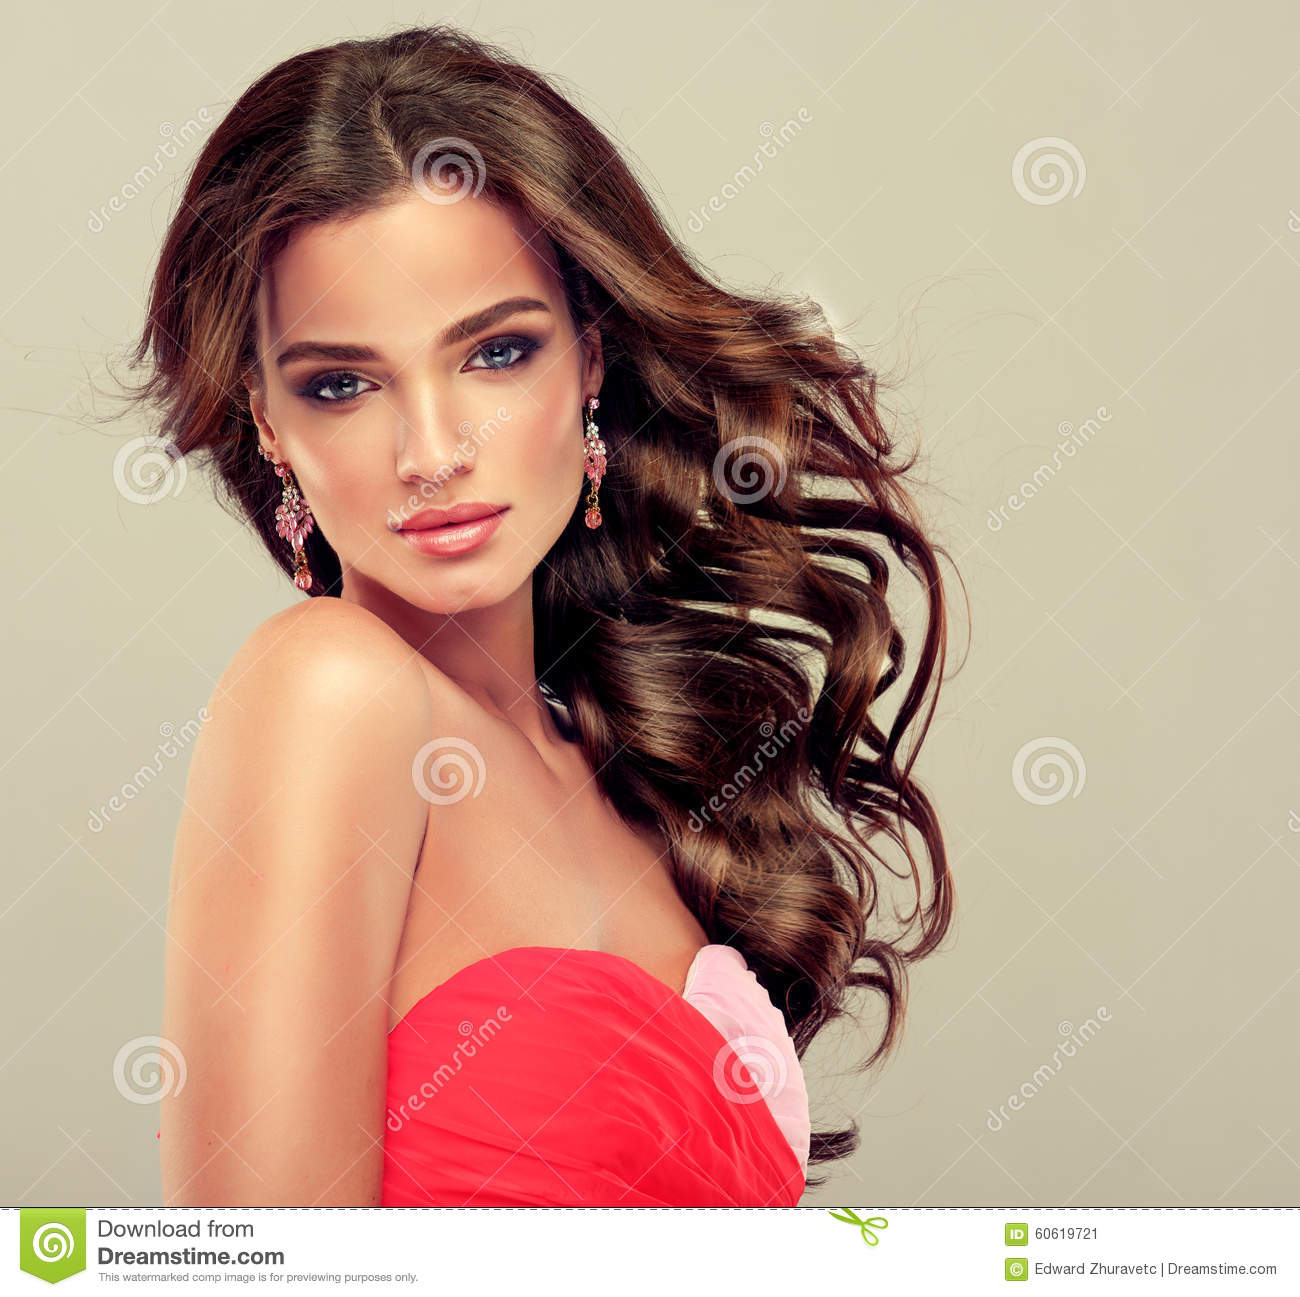 Brunette with long curled hair.